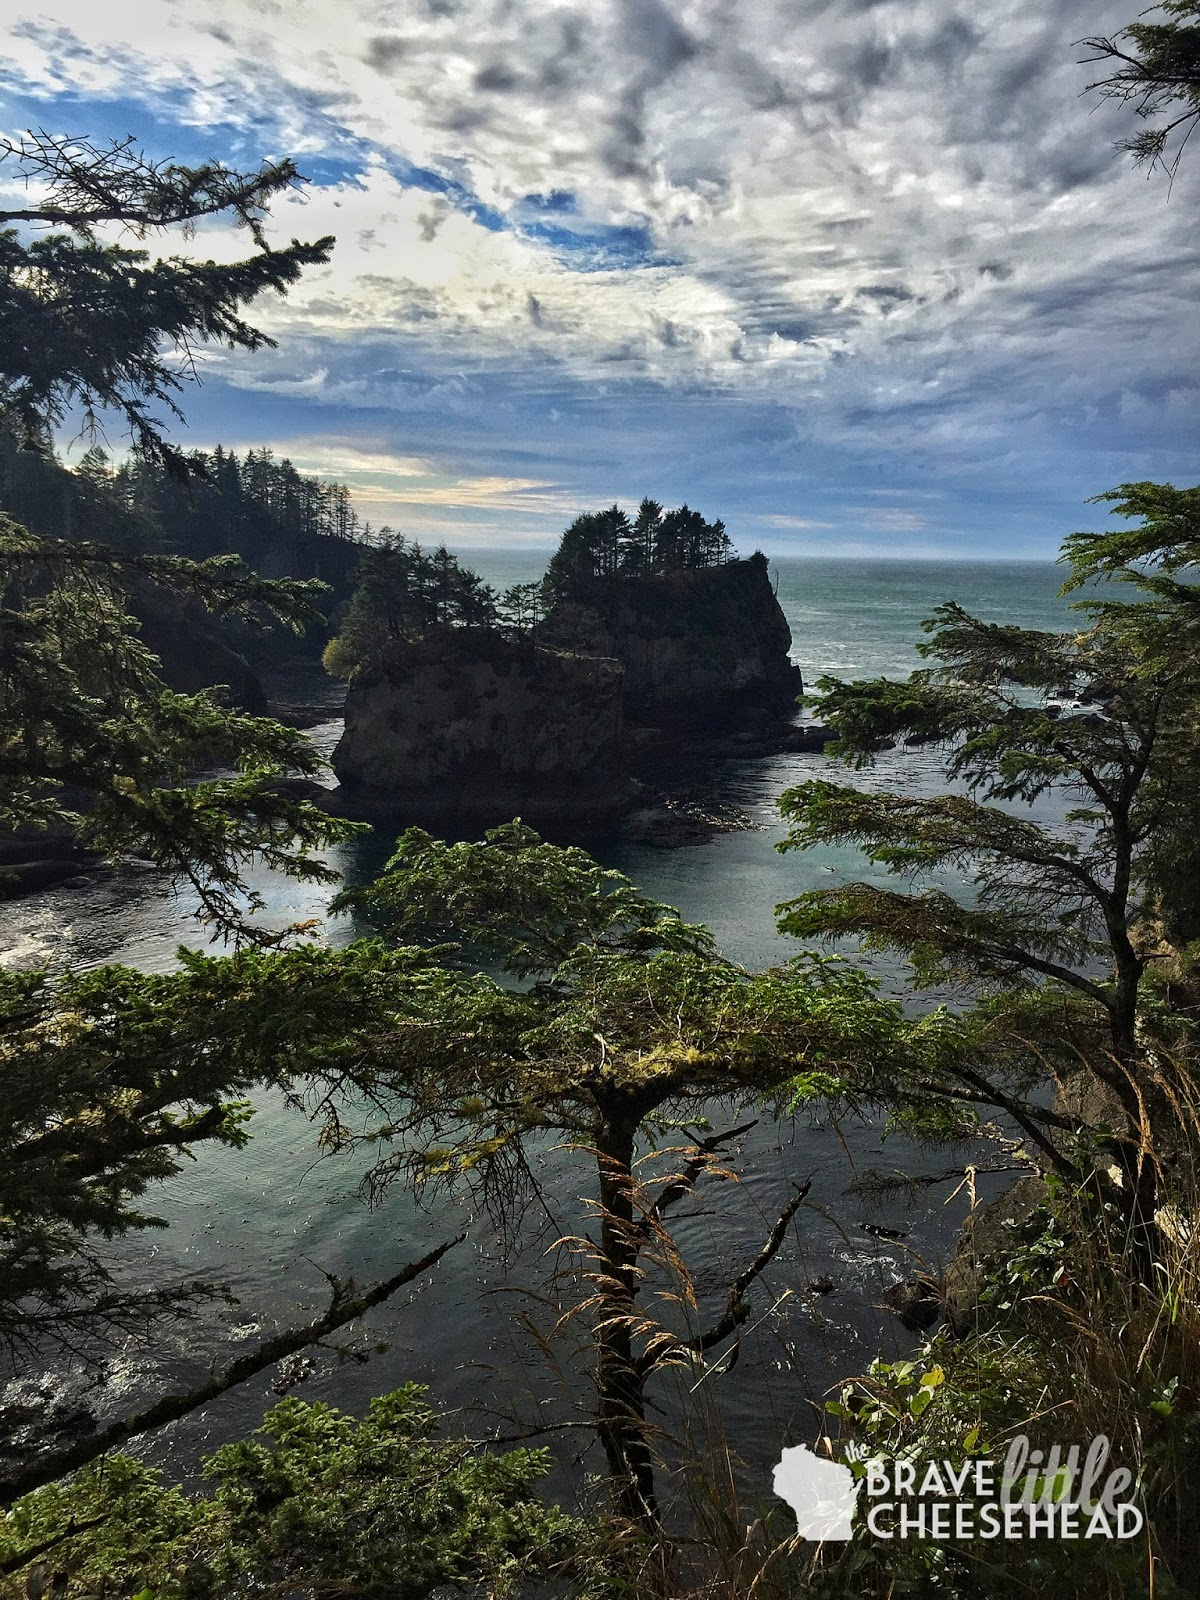 3-Day Washington Coast Road Trip to Olympic National Park | The Brave Little Cheesehead at bravelittlecheesehead.com